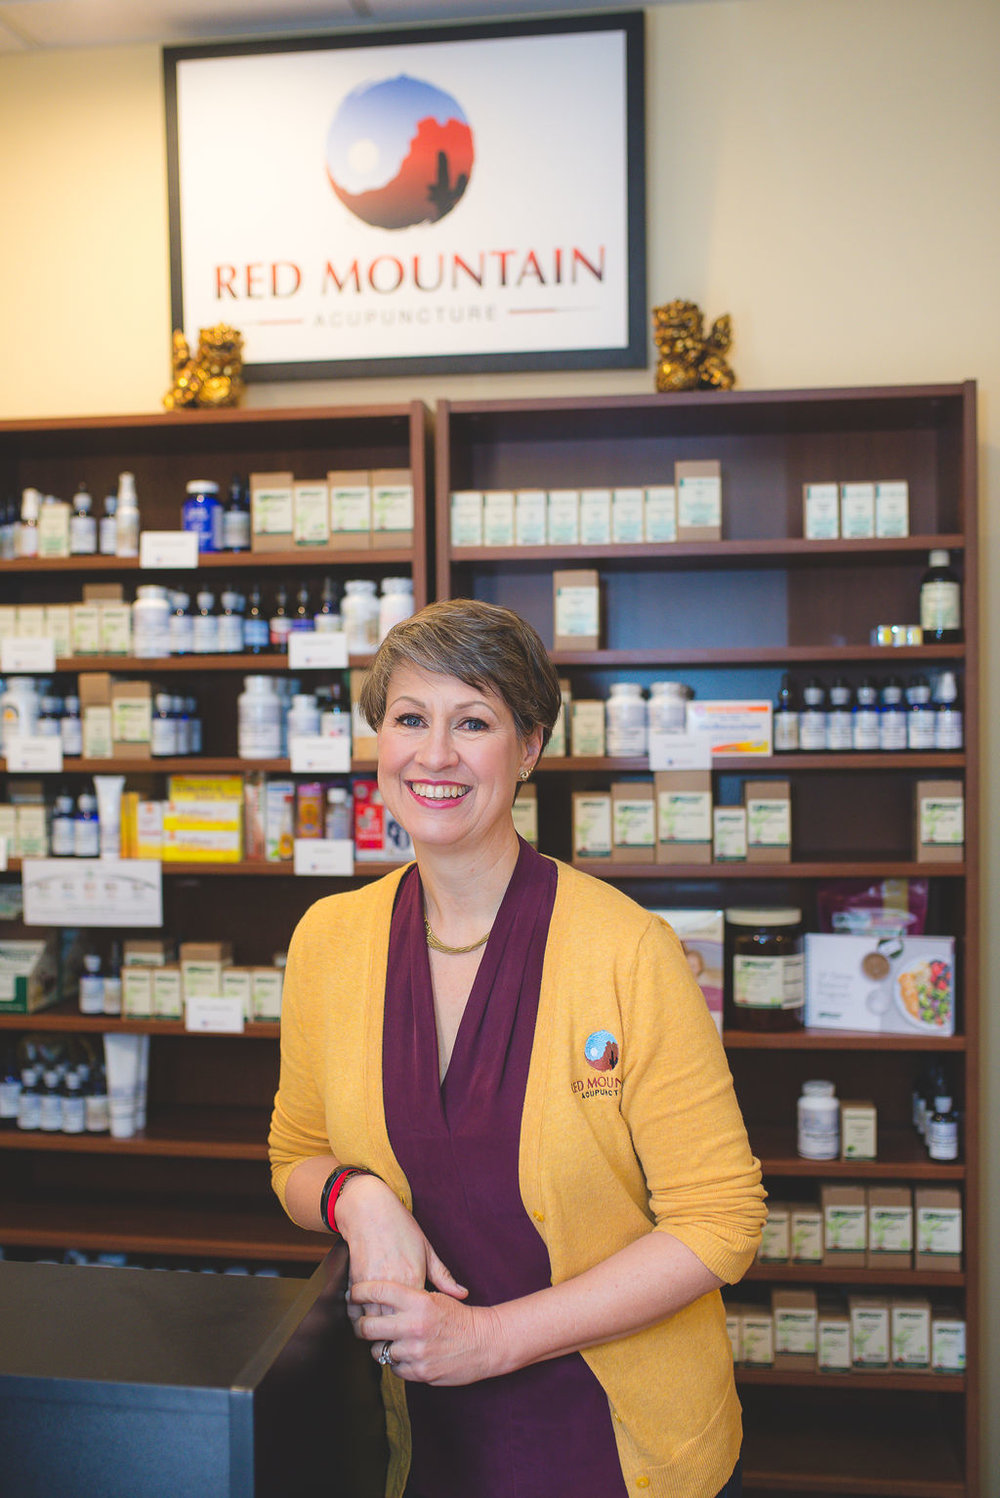 Natascha Hebell, L.AC, MSOM, HHP (Owner/Red Mountain Acupuncture) - pHOTO BY sARAH hOAG pHOTOGRAPHY